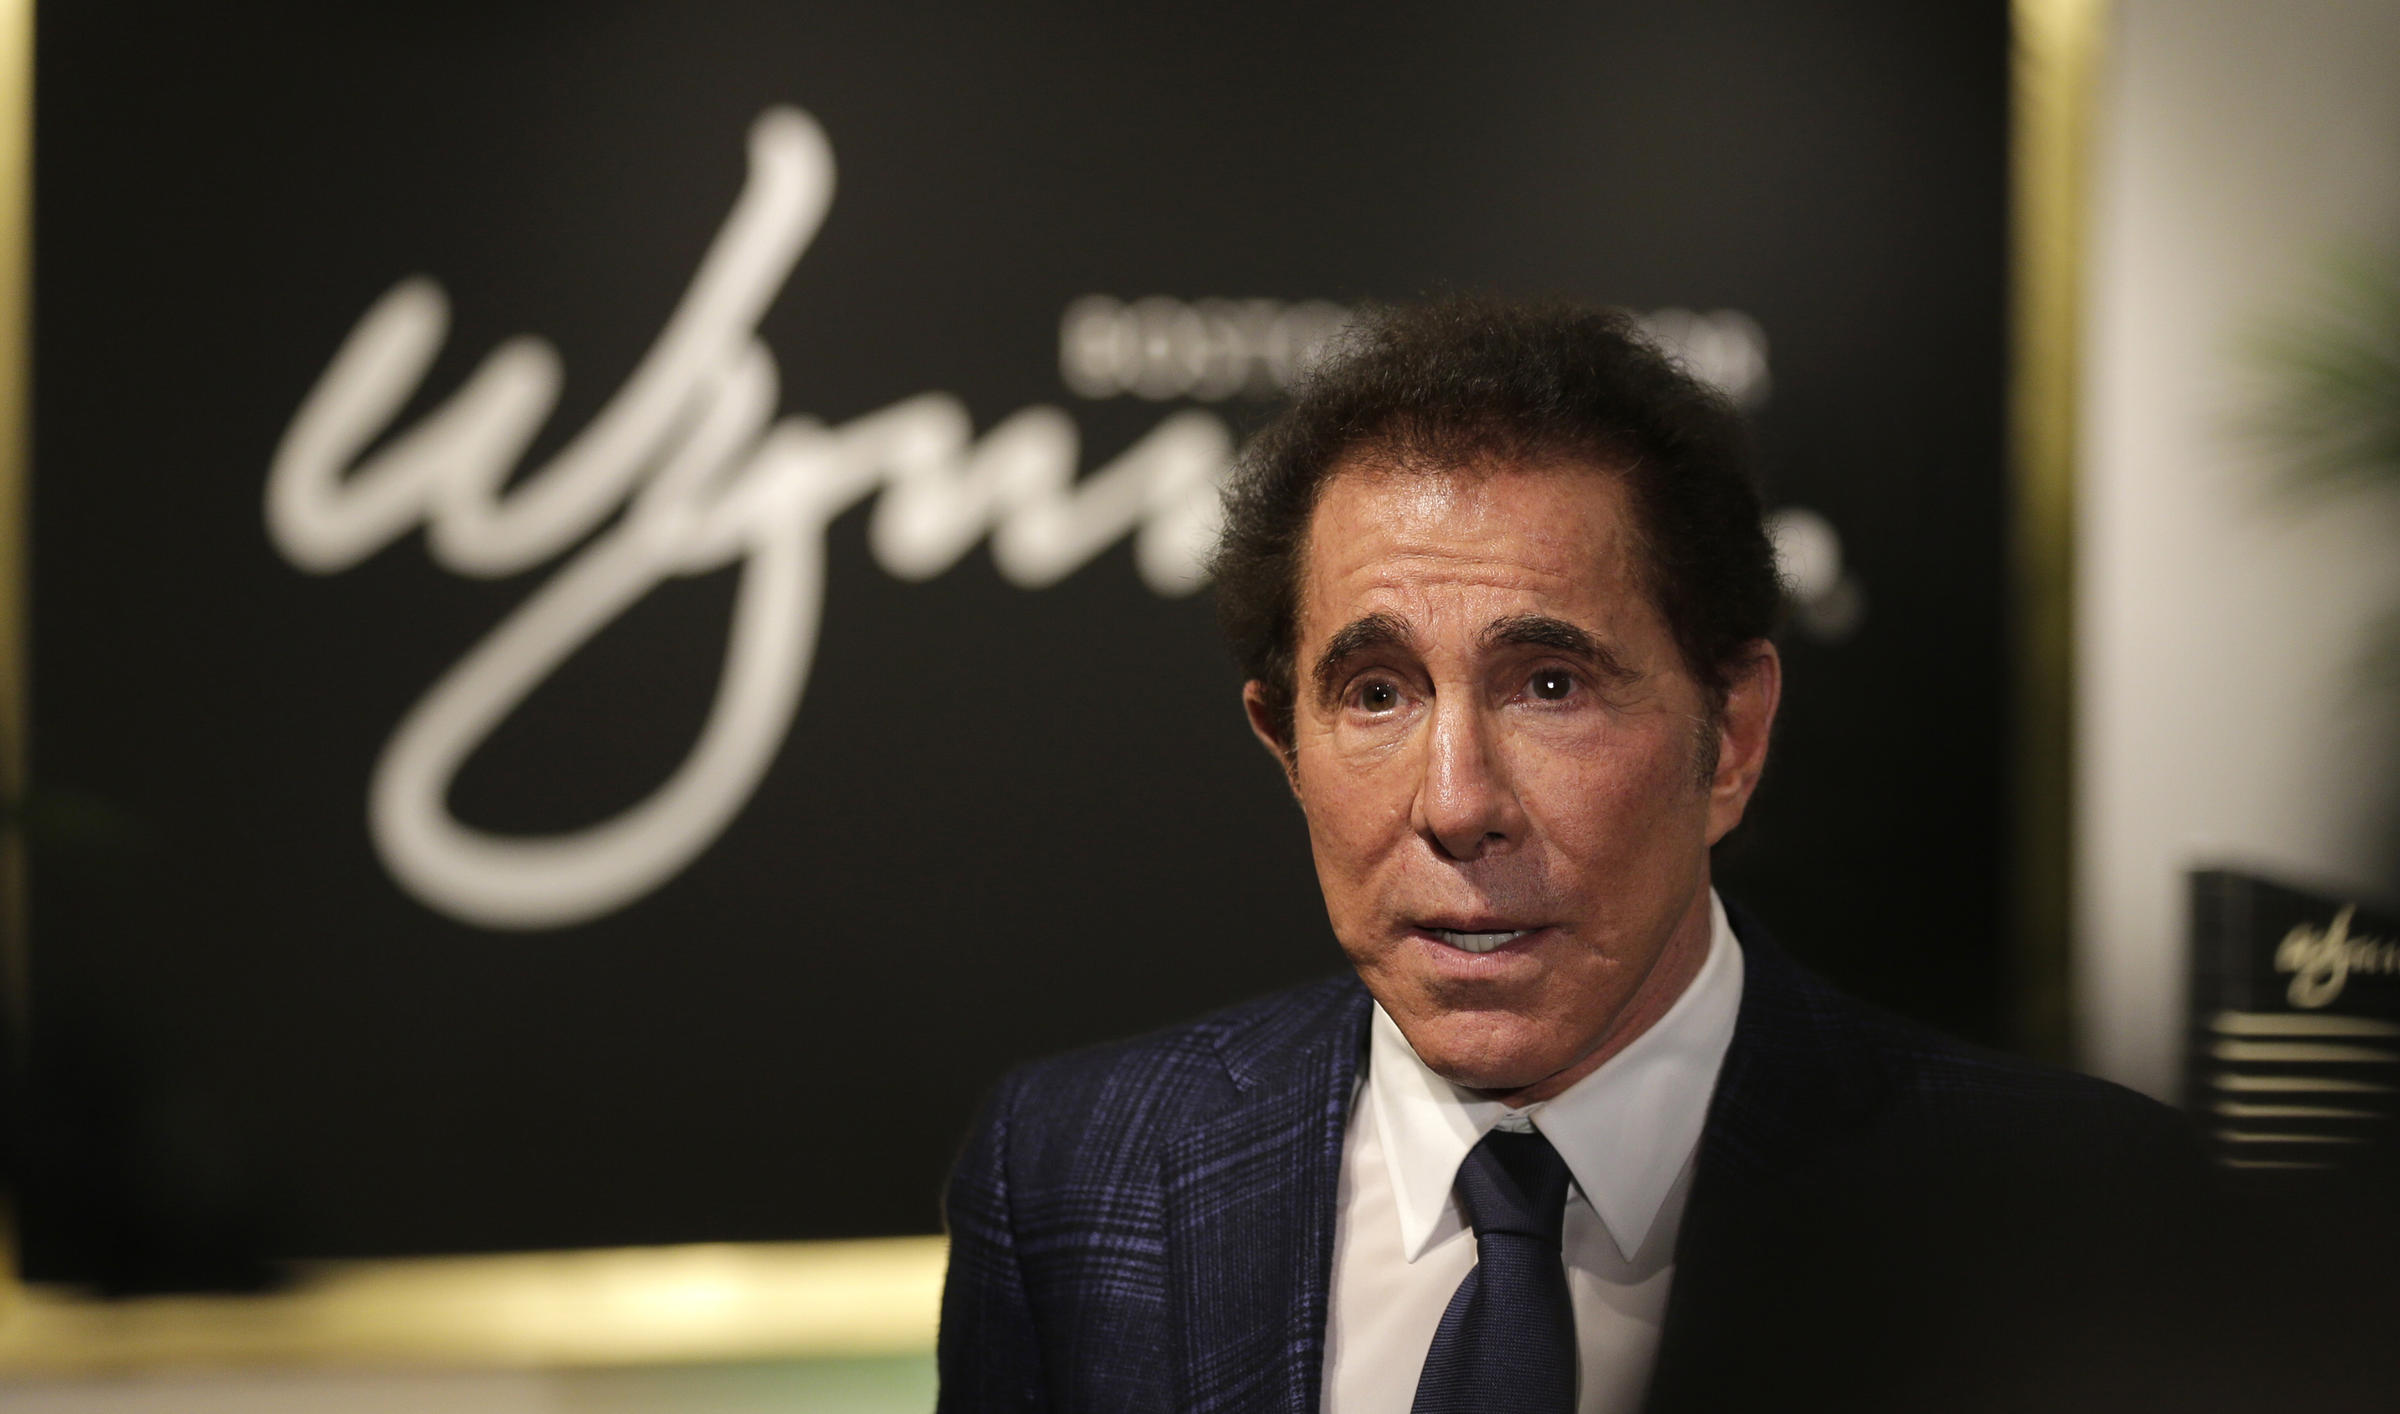 Wynn Resorts could soon be in a no-Wynn situation